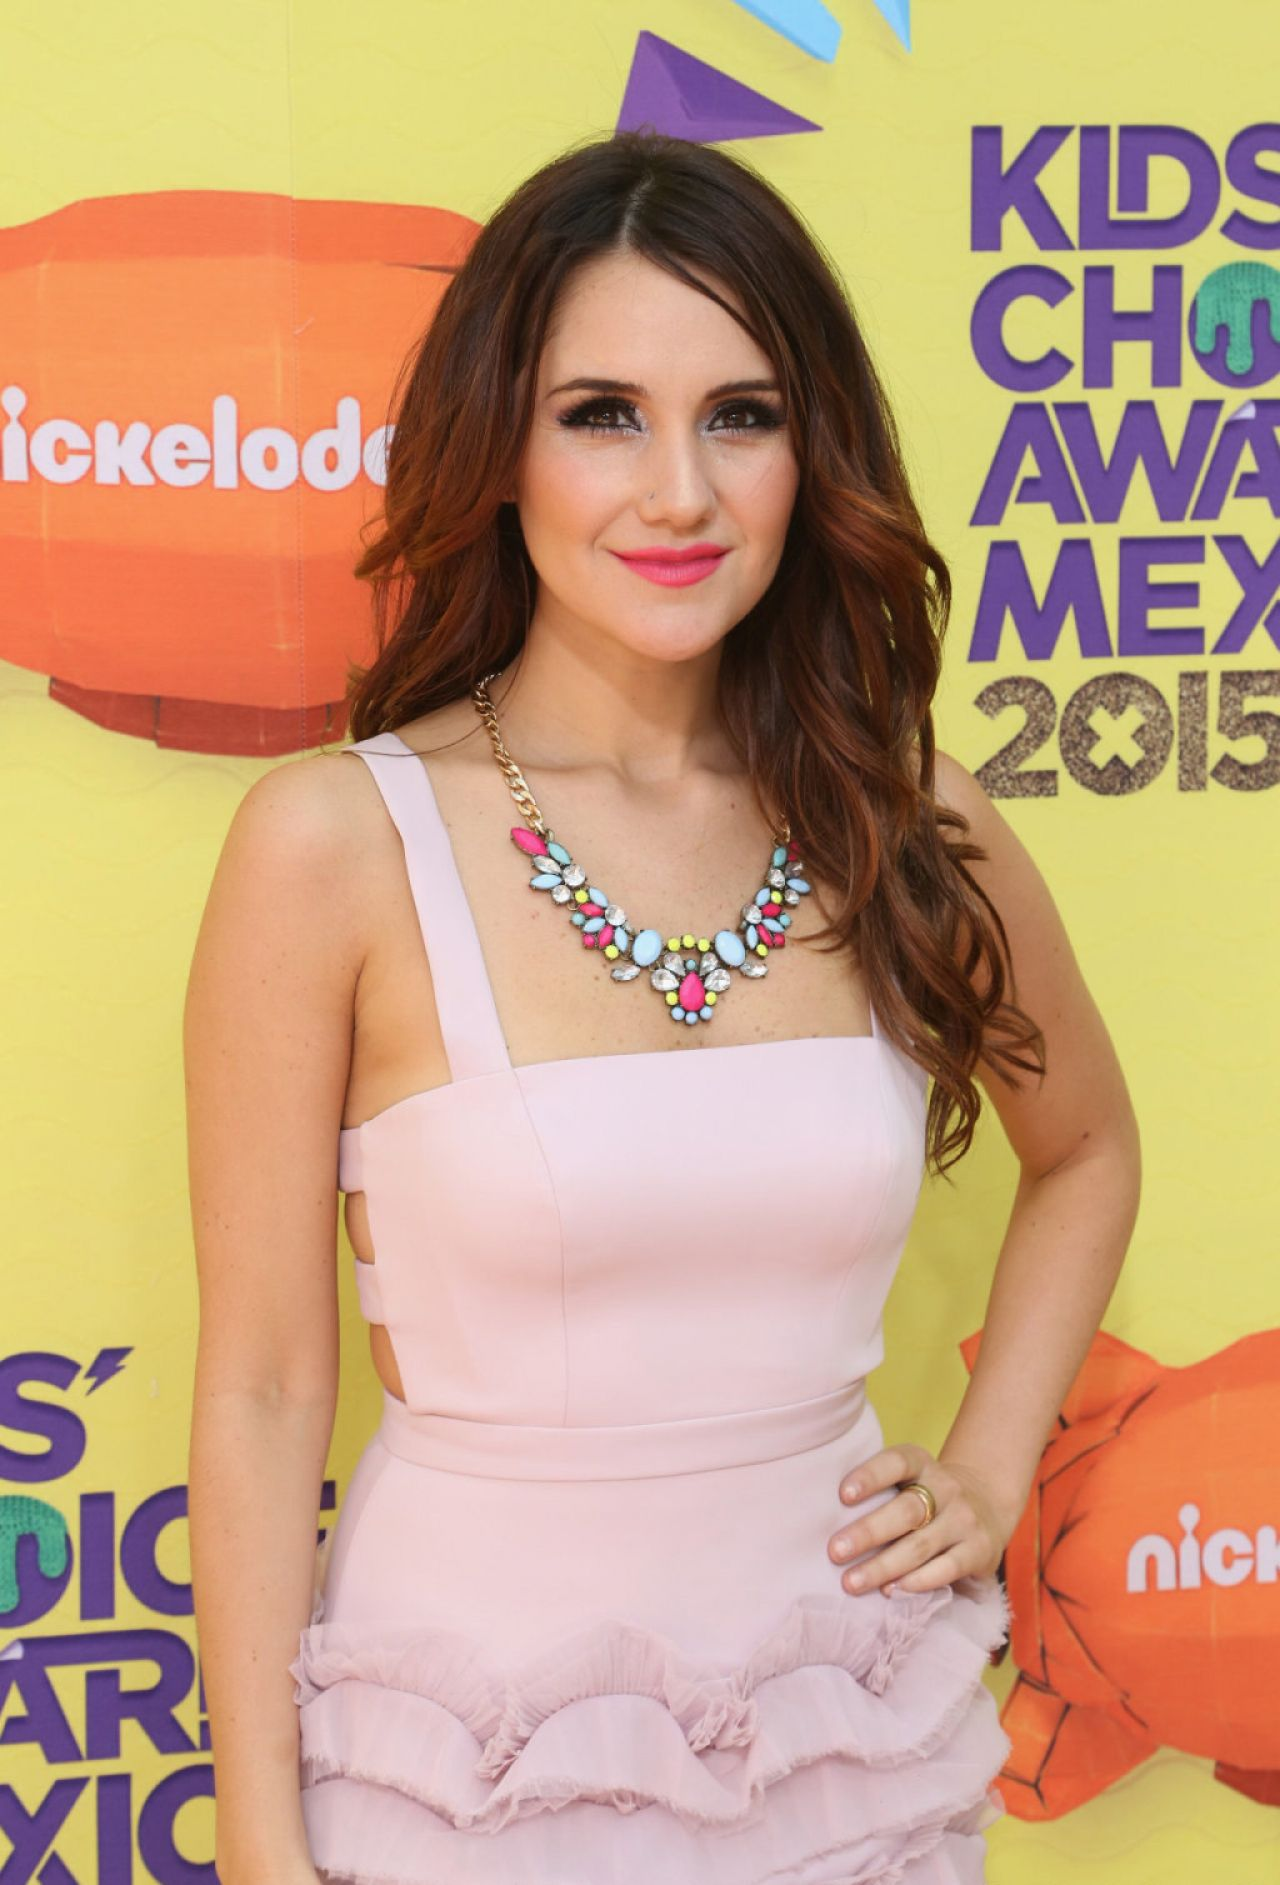 Dulce Maria Nickelodeon Kids Choice Awards Mexico 2015